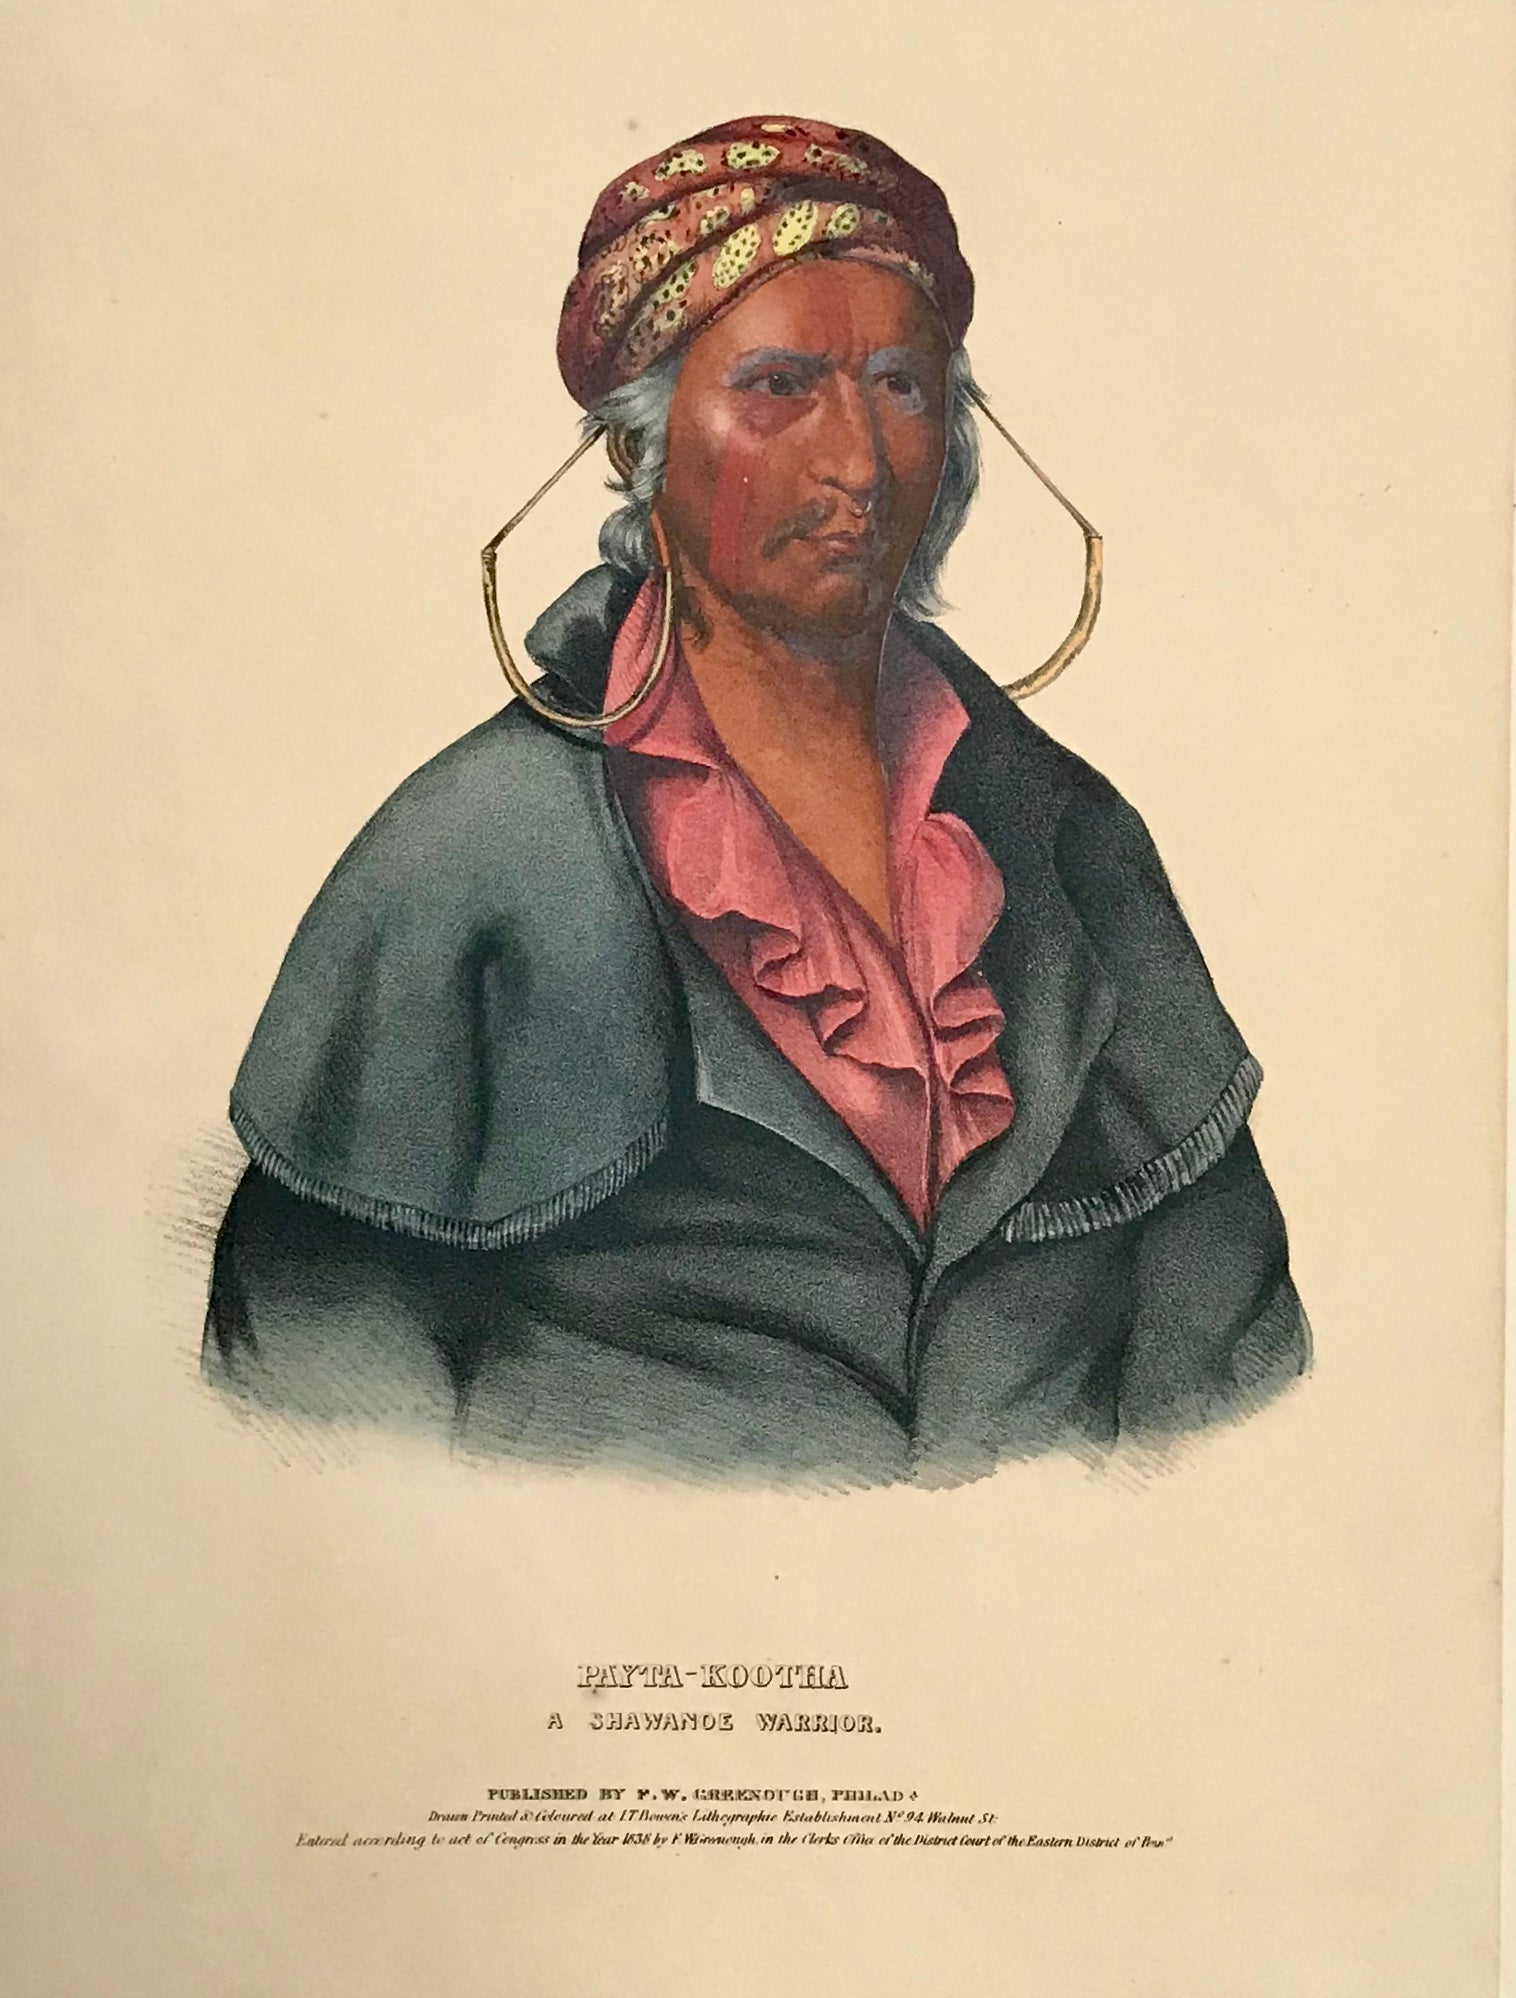 """Payta-Kootha - A Shawanoe Warrior"" Lithograph. Original hand coloring Painting by Charles Bird King (1785-1862) Published in: ""History of the Indian Tribes of North America"" Authors: Thomas Loraine McKenny (1785-1859) and James Hall (1793-1868) Folio edition"